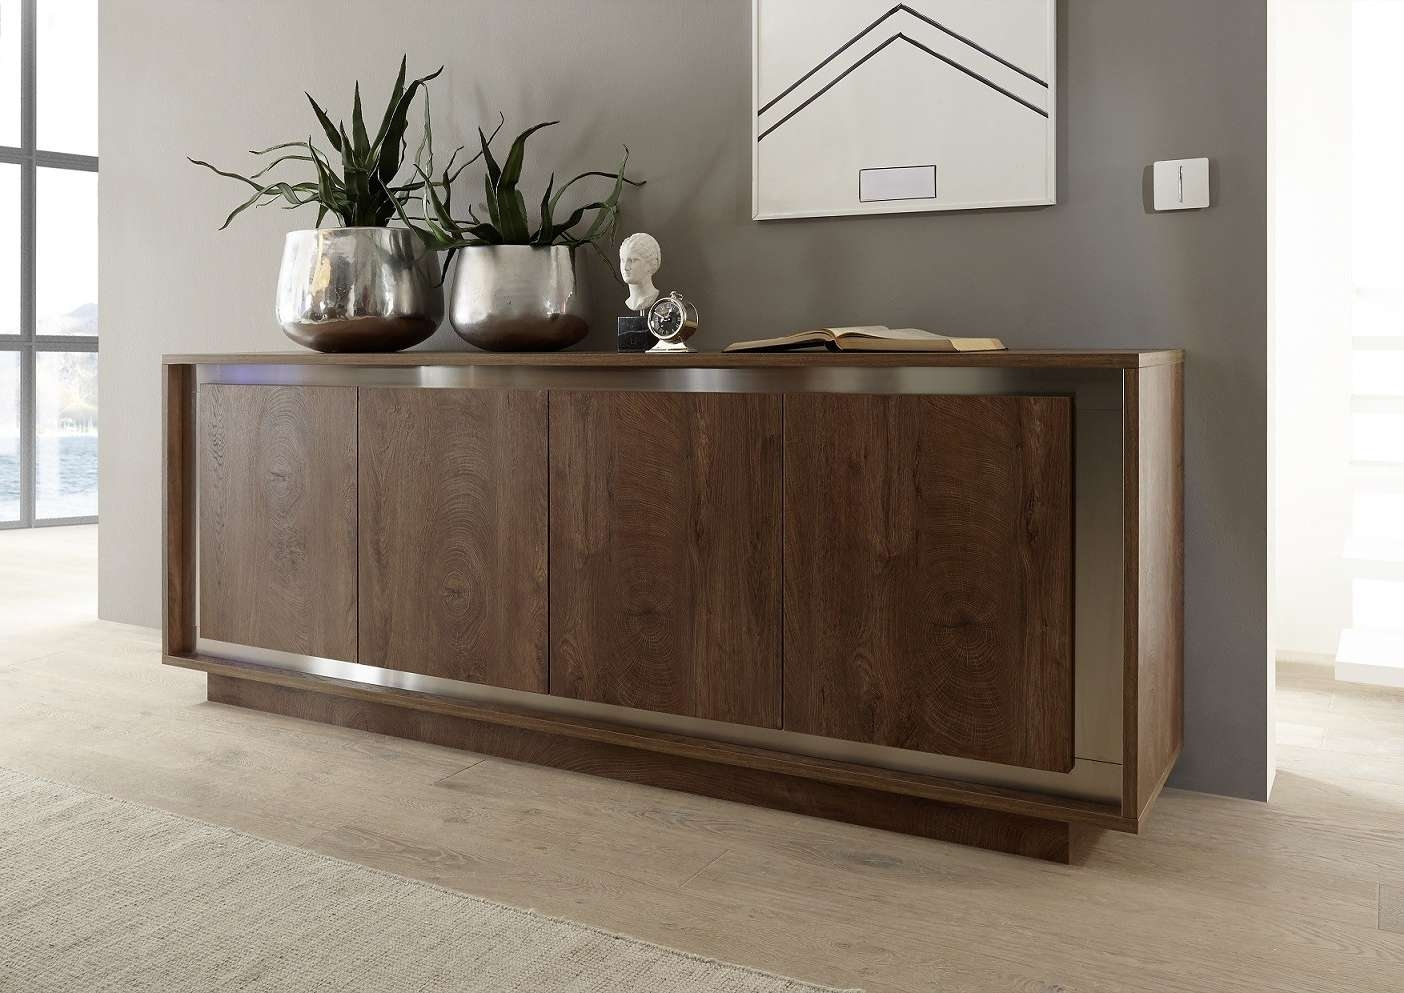 Modern Sideboards Uk – Sena Home Furniture Pertaining To Hallway Sideboards (View 3 of 20)